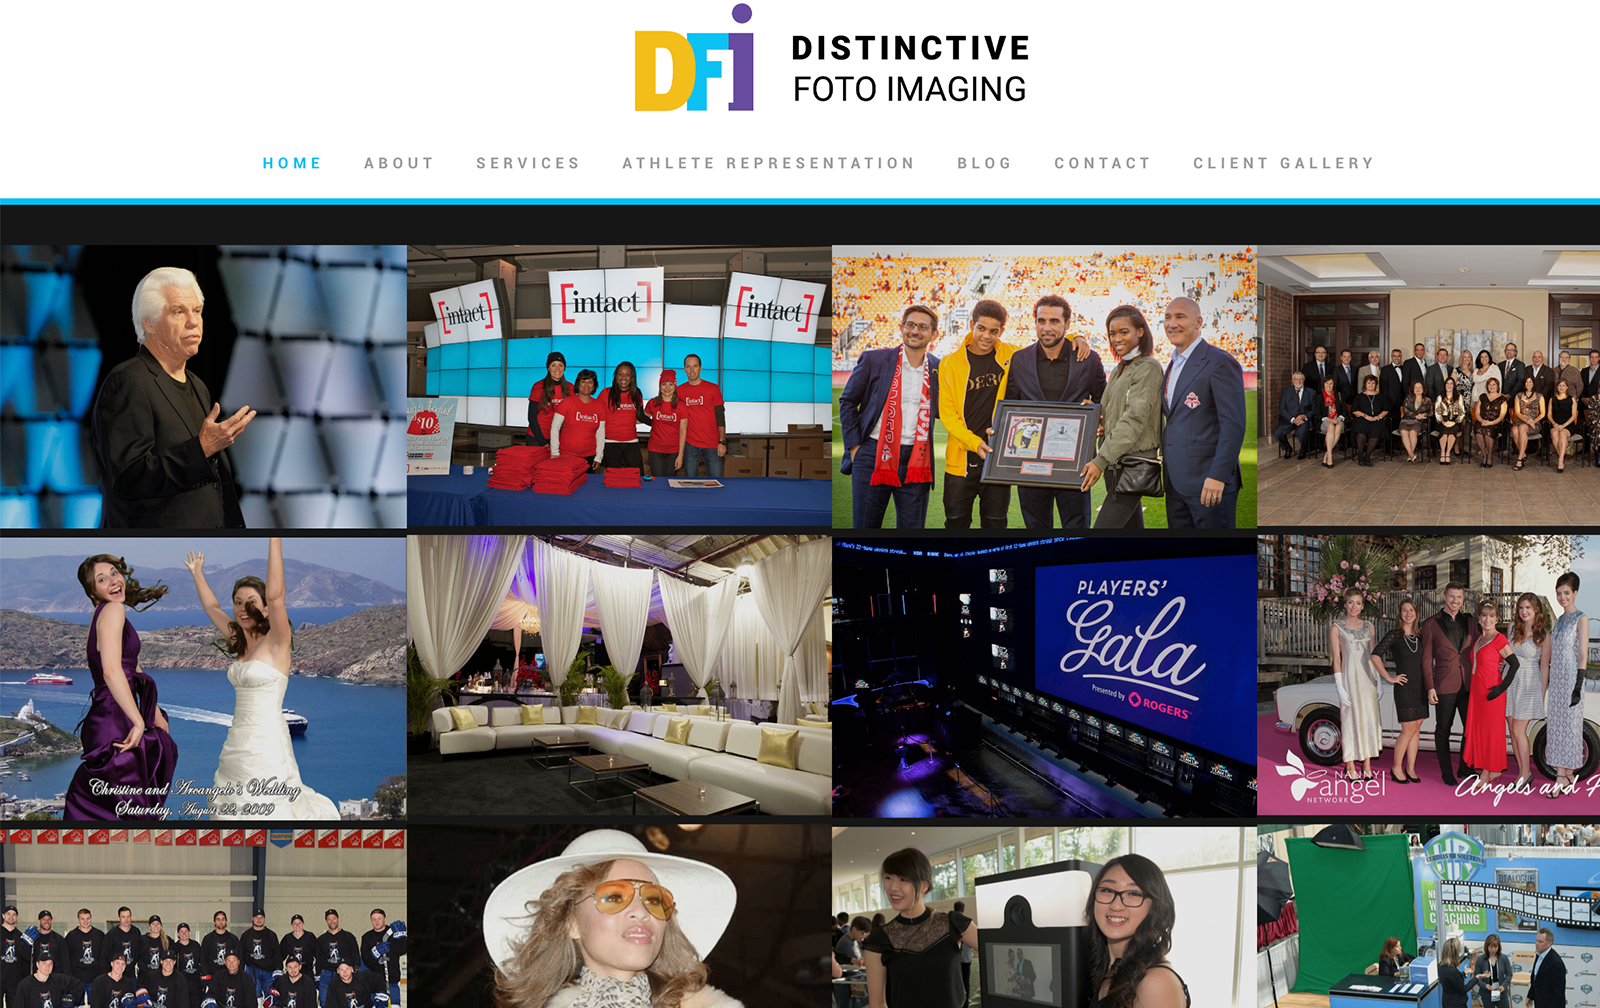 Distinctive Foto Website desktop